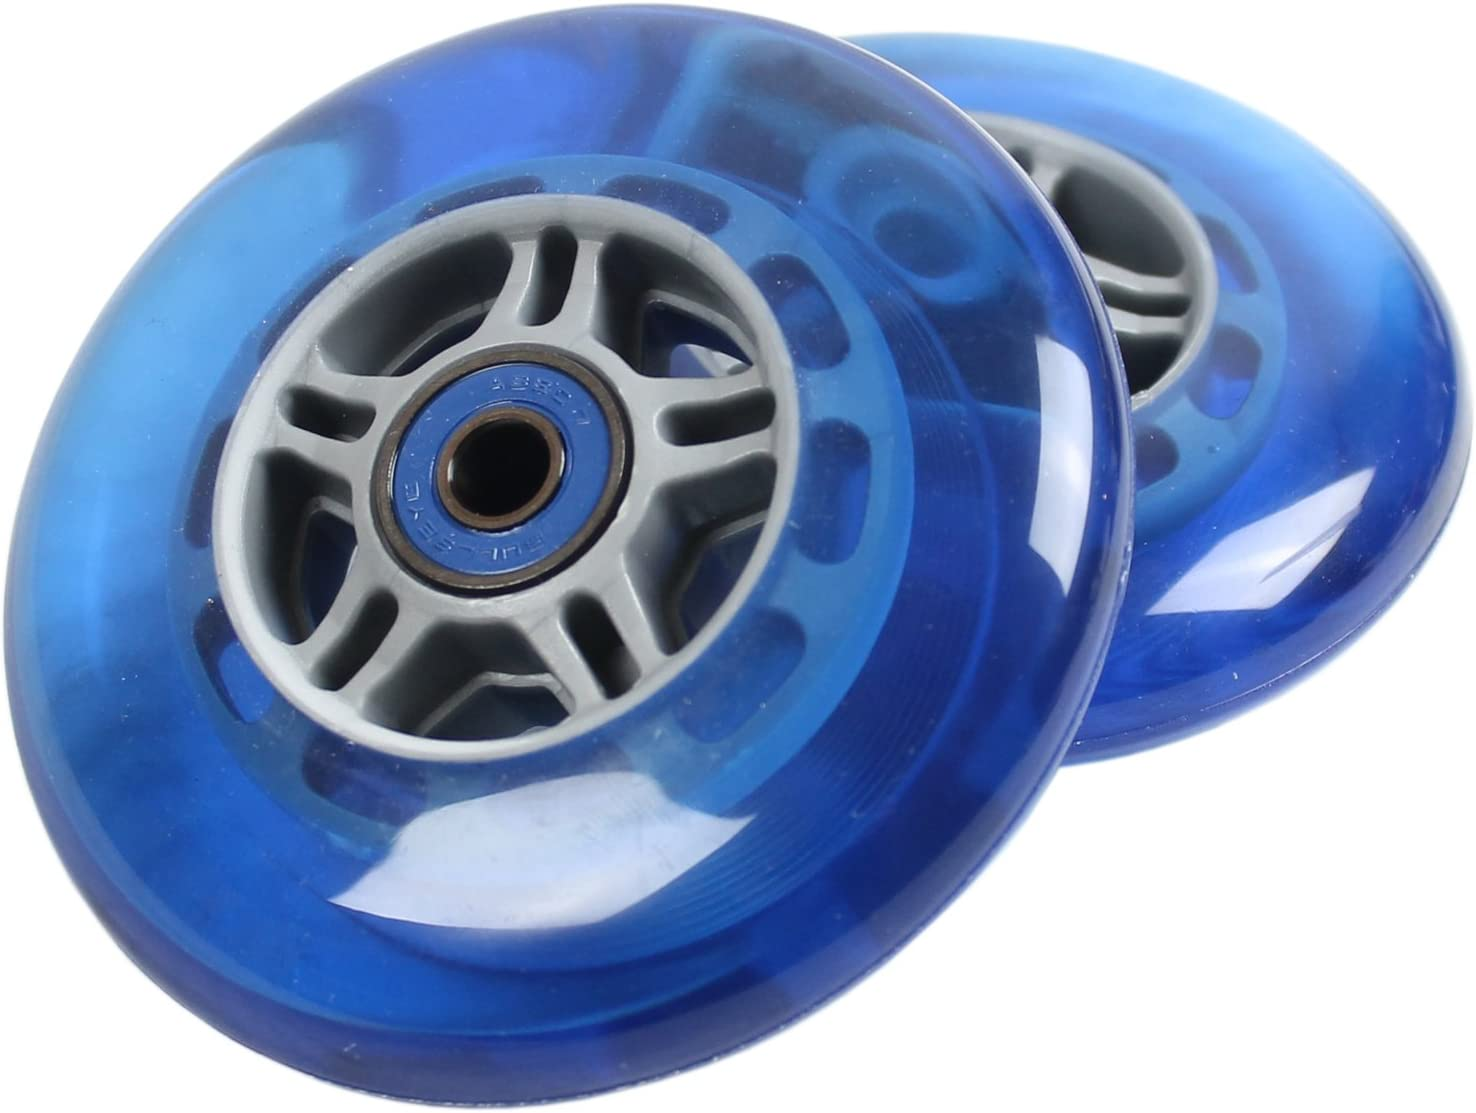 CLEAR Replacement Razor Scooter Wheels ABEC 7 Bearings PINK Grips